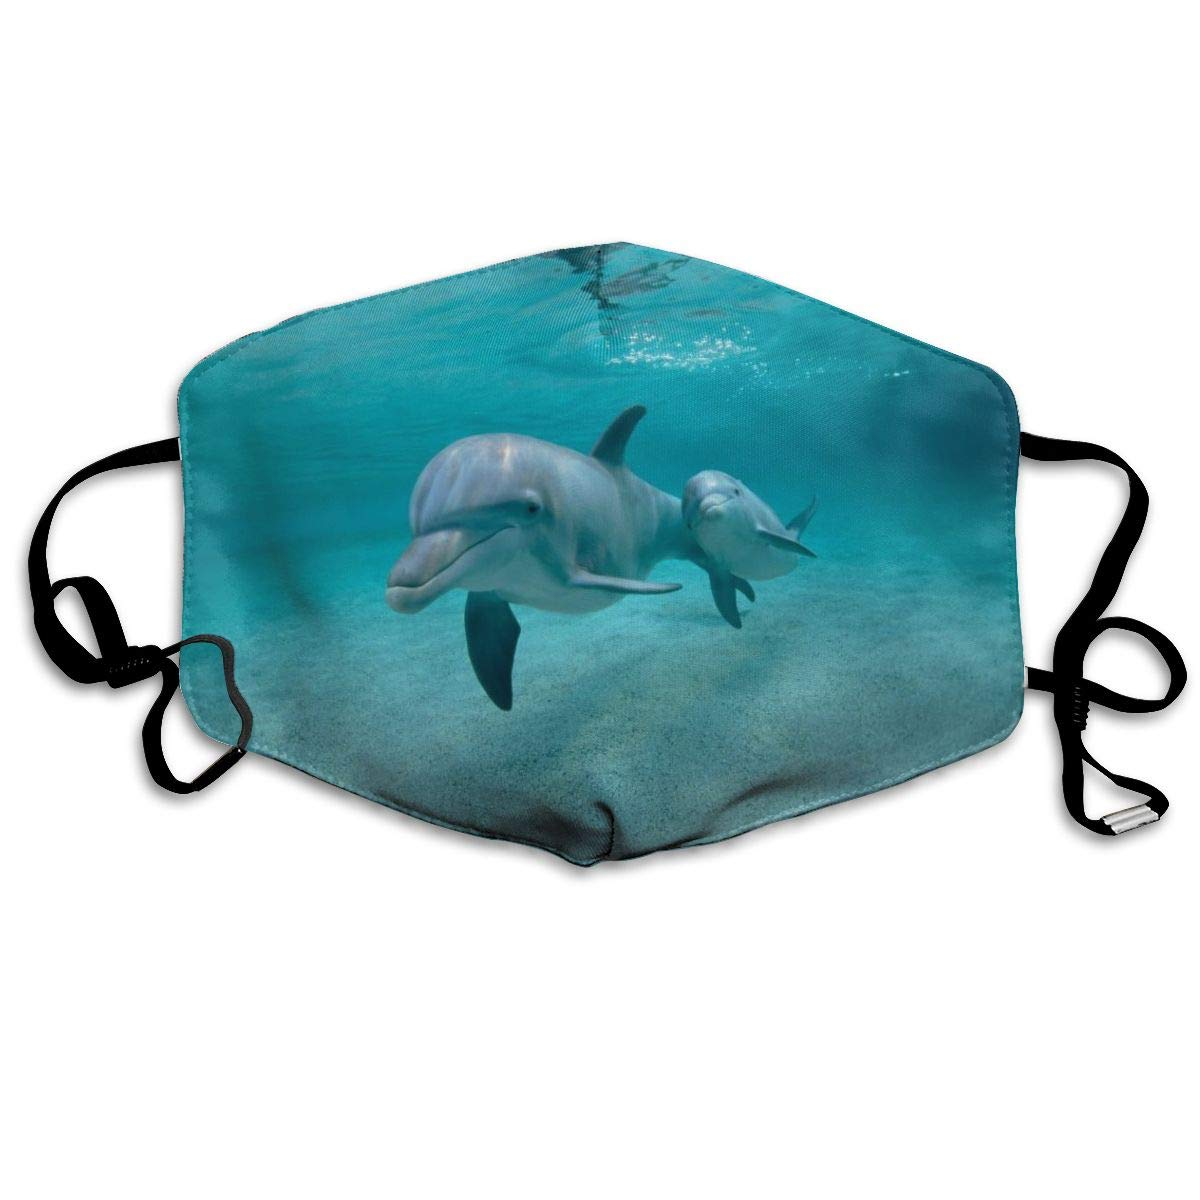 Underwater Dolphins Dust Mask, Reusable Washable Mouth Masks, Adjustable Warm Face Mask Unique Cover Filters Blocking Pollen